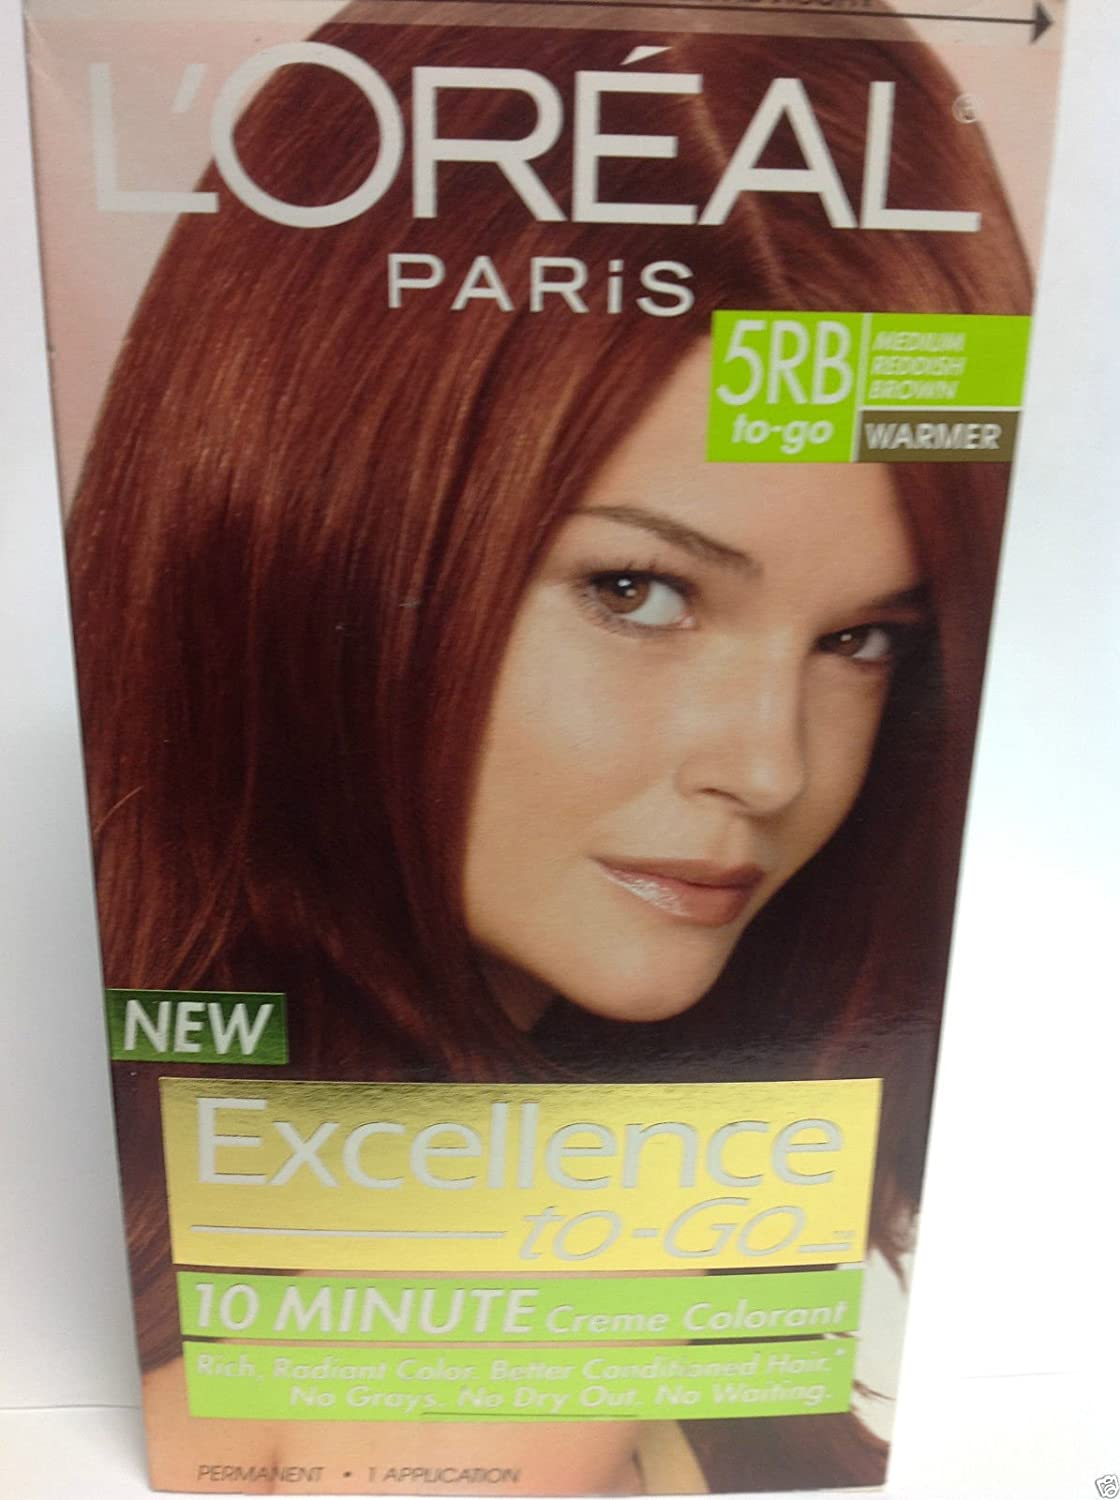 L'Oreal Paris Excellence To-Go 10-Minute Crème Coloring, Medium Reddish Brown 5RB